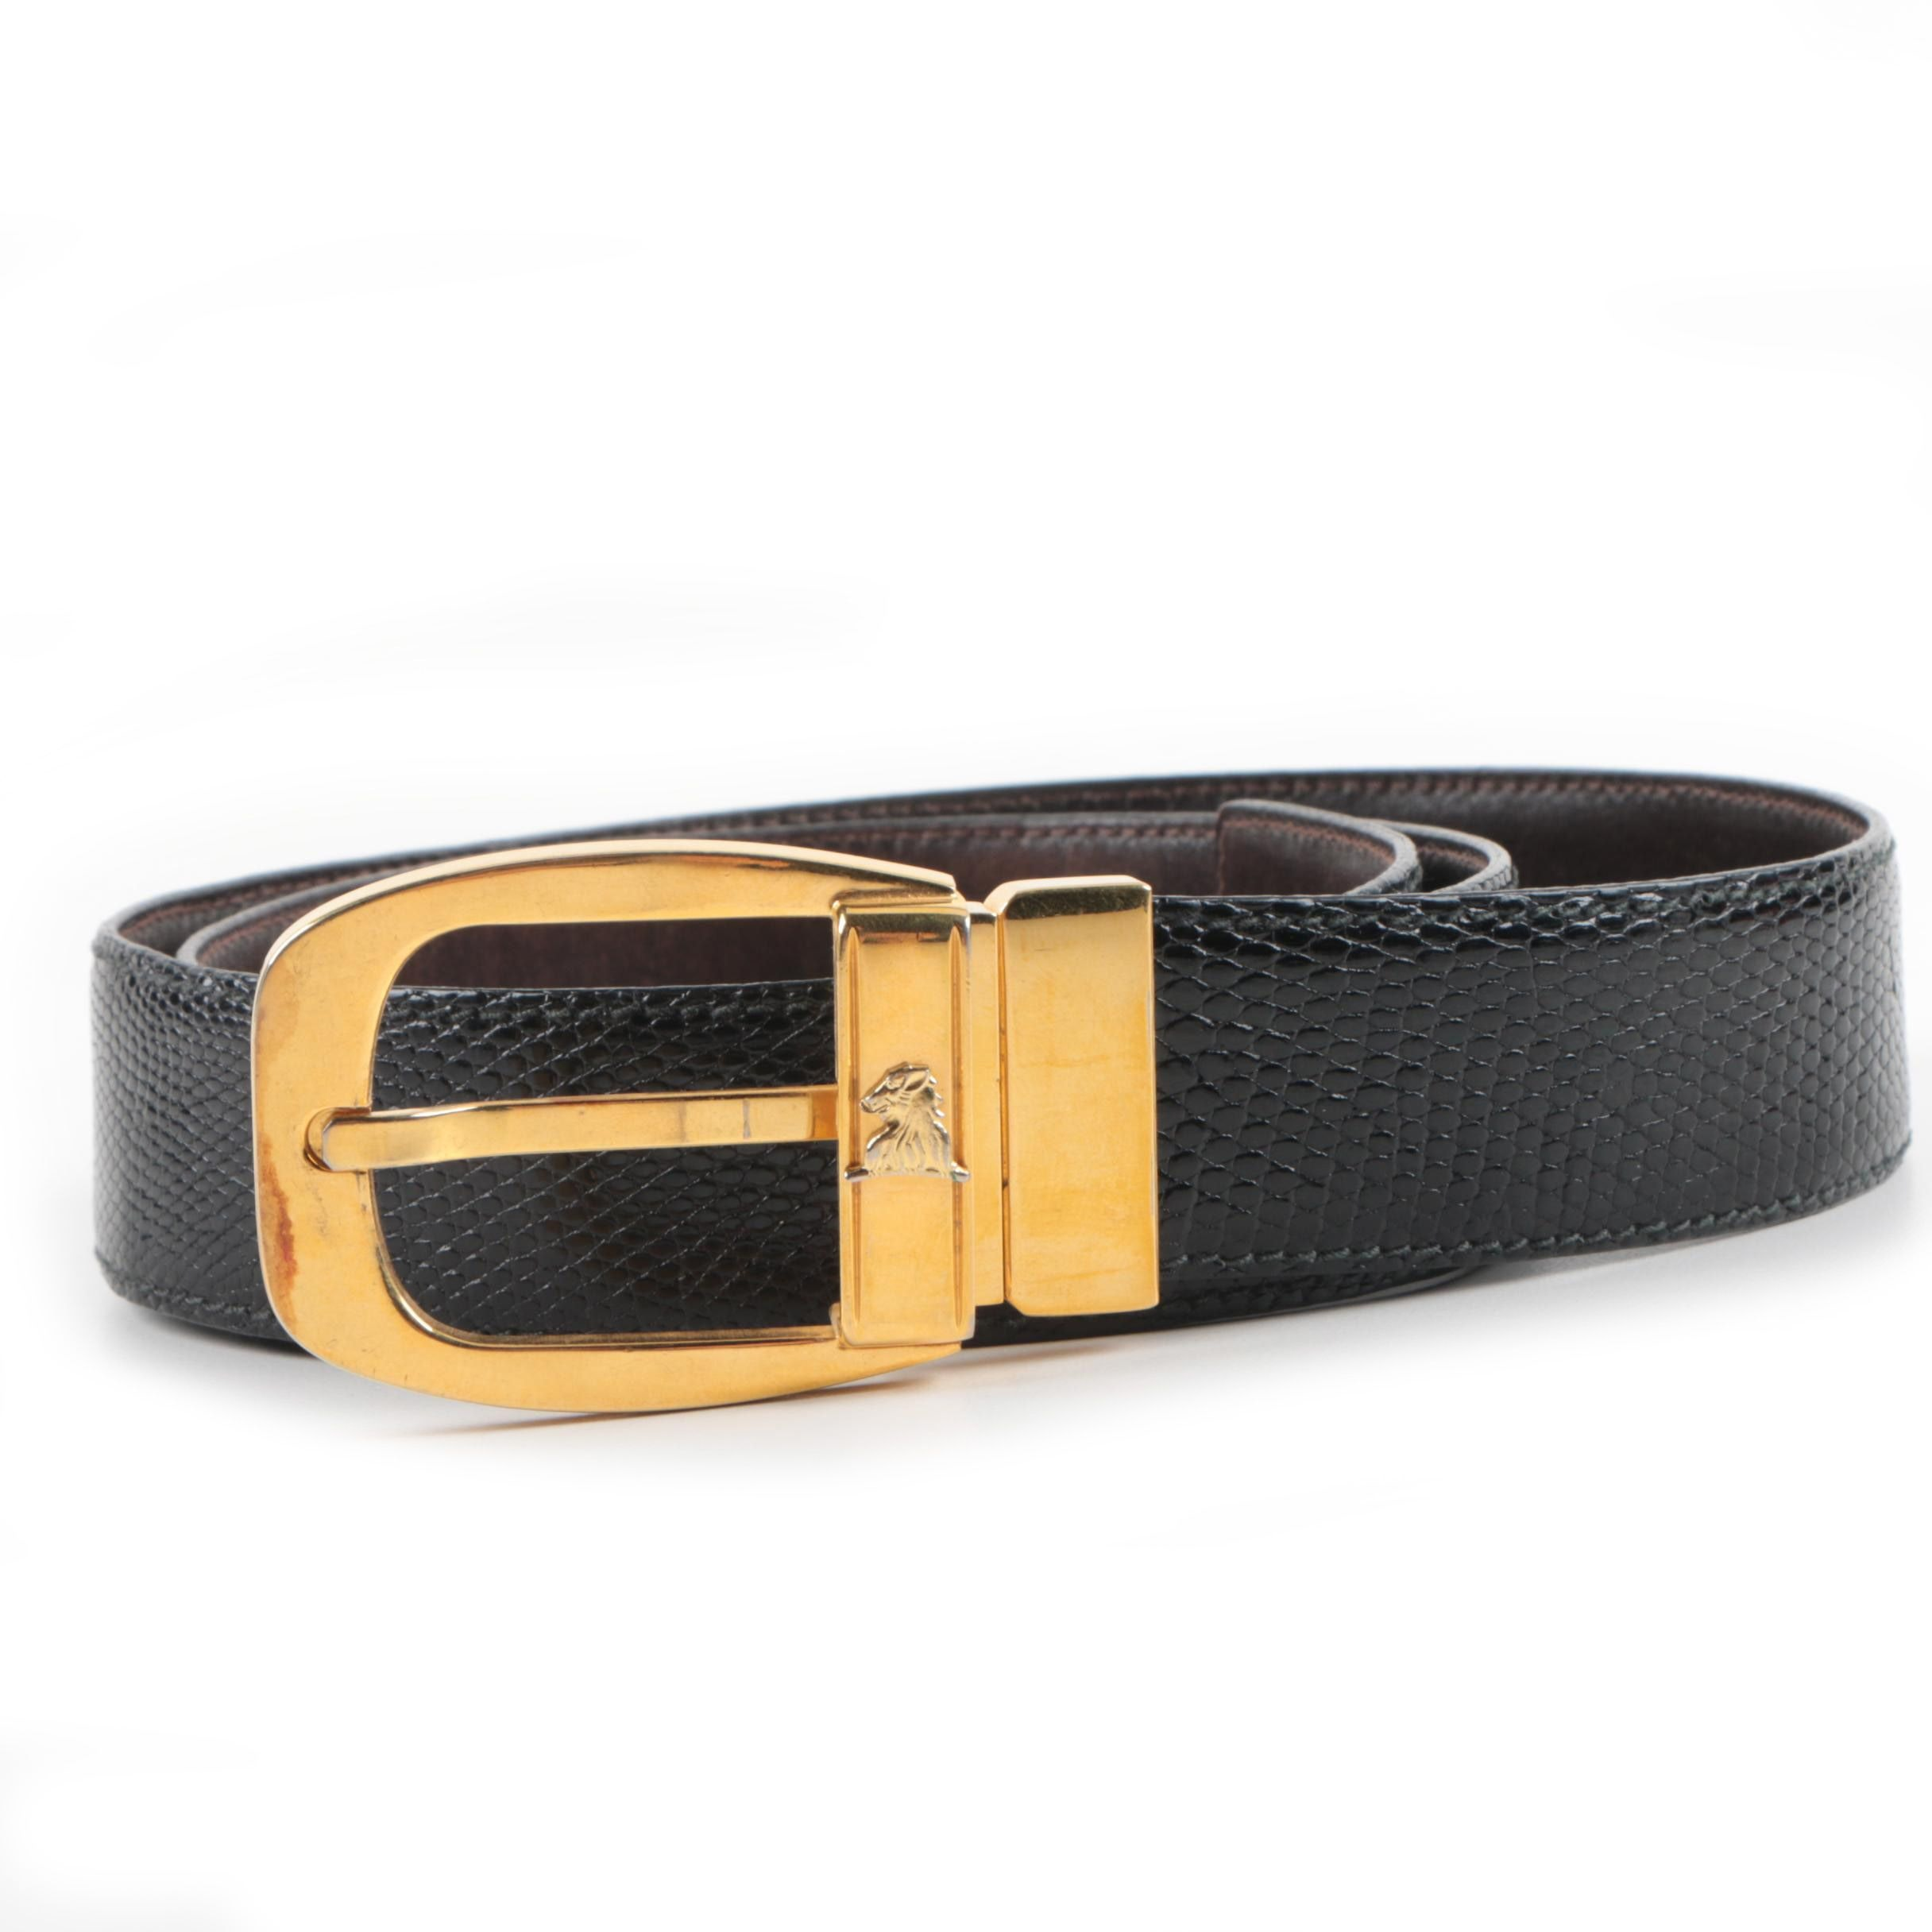 Vintage Mark Cross Reptile Belt